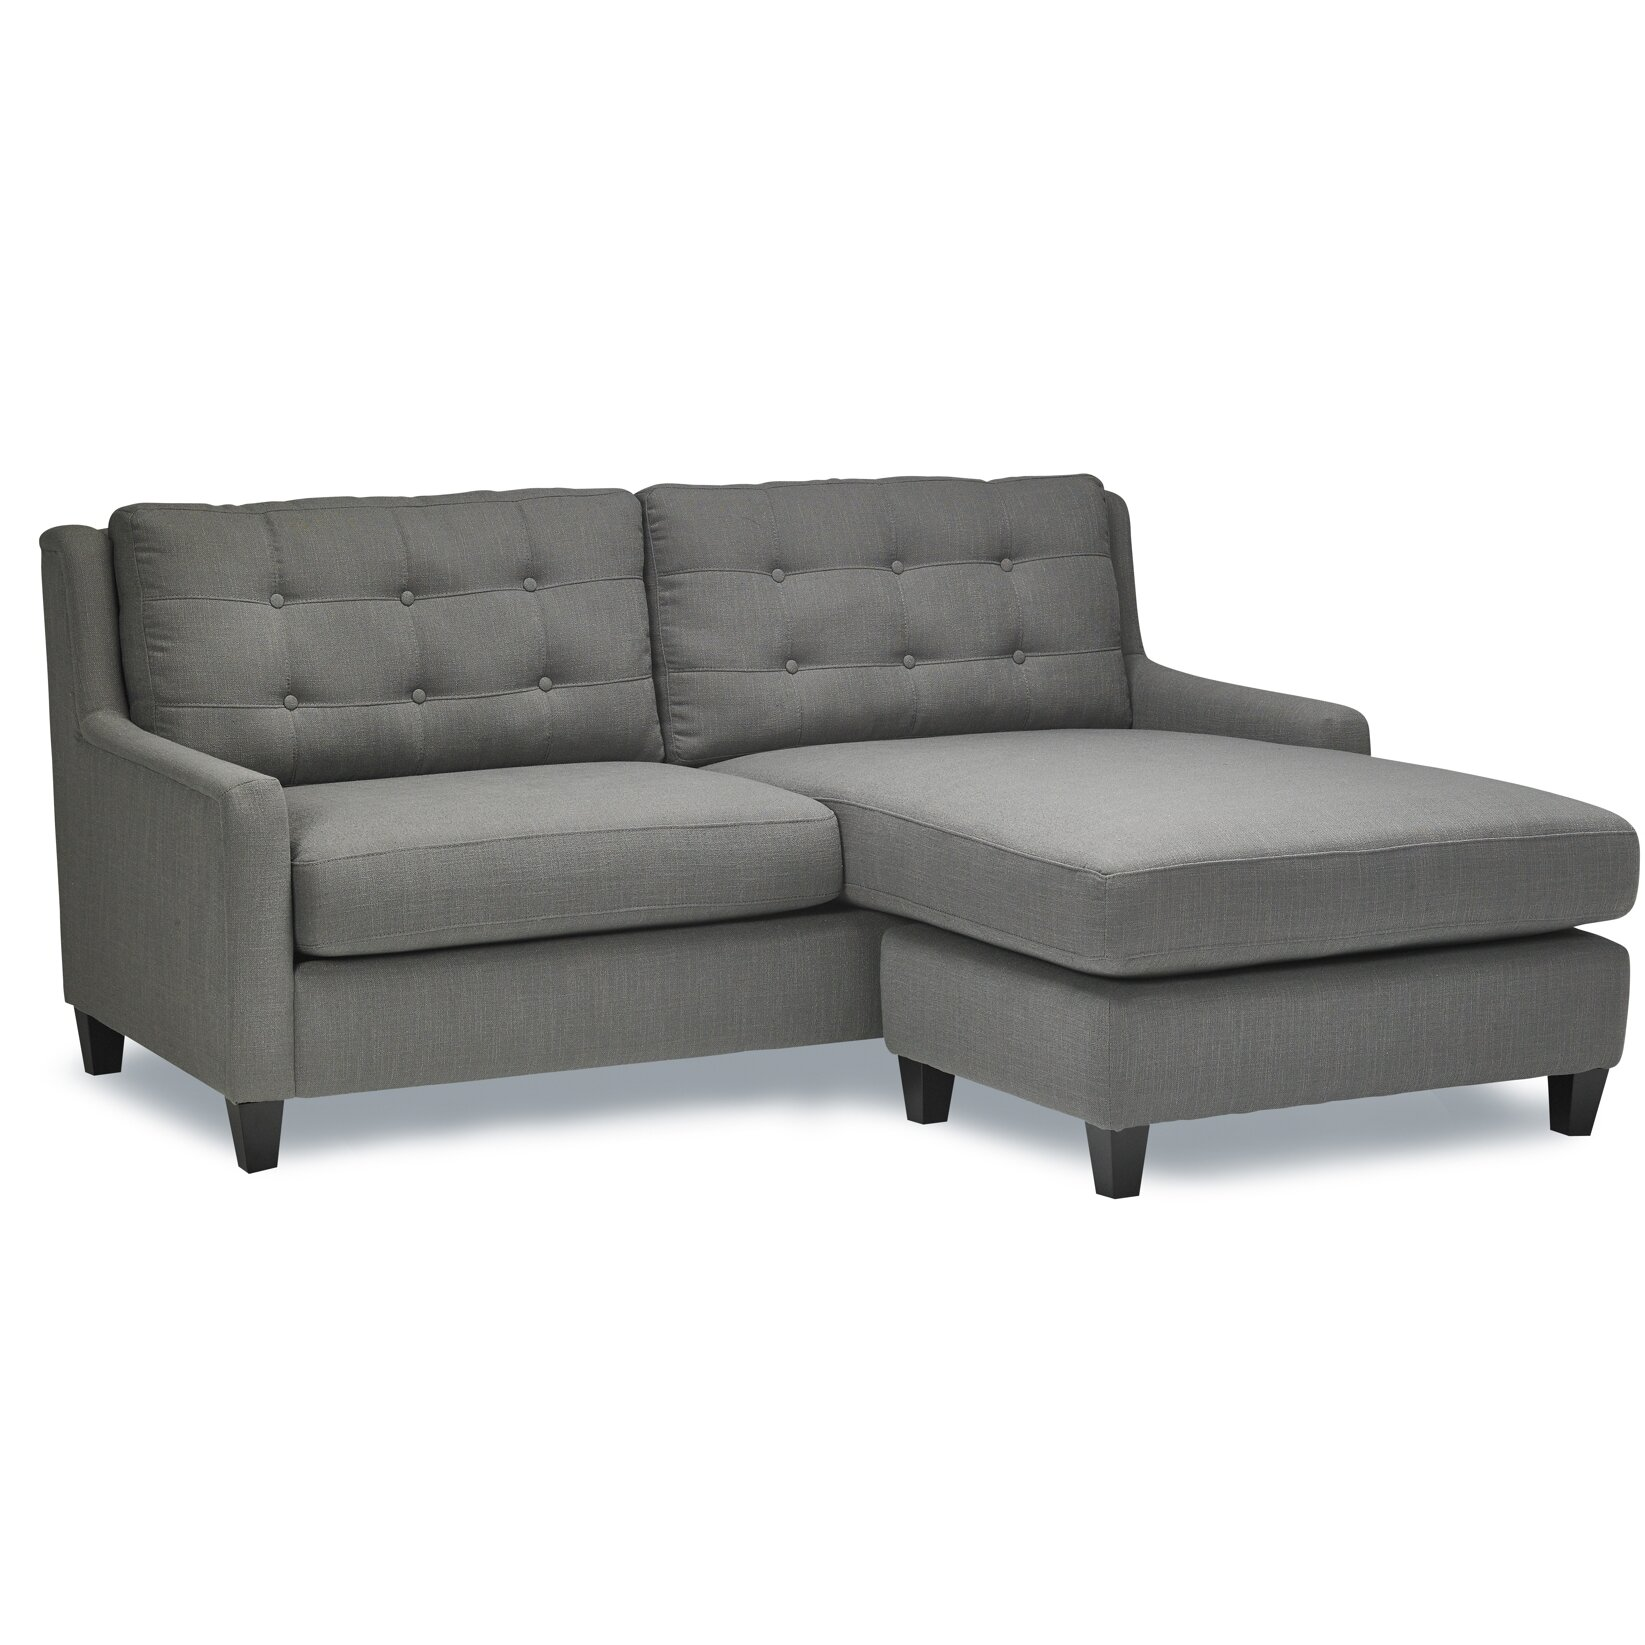 sofas to go sectional reviews wayfair. Black Bedroom Furniture Sets. Home Design Ideas